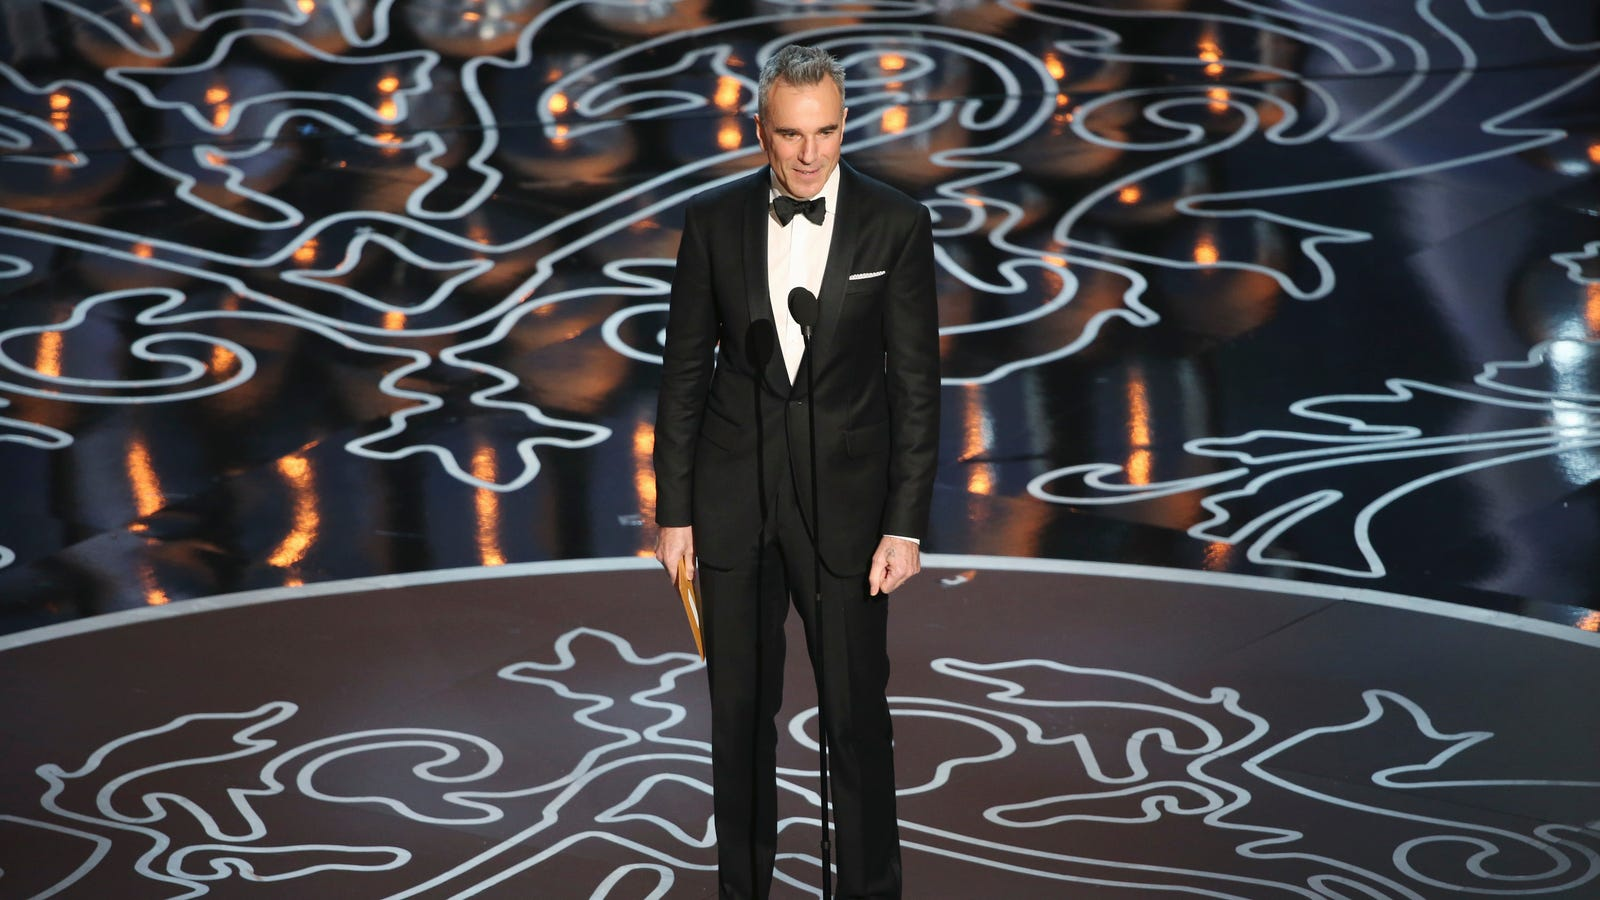 Daniel Day-Lewis was apparently obsessed with Naked And Afraid